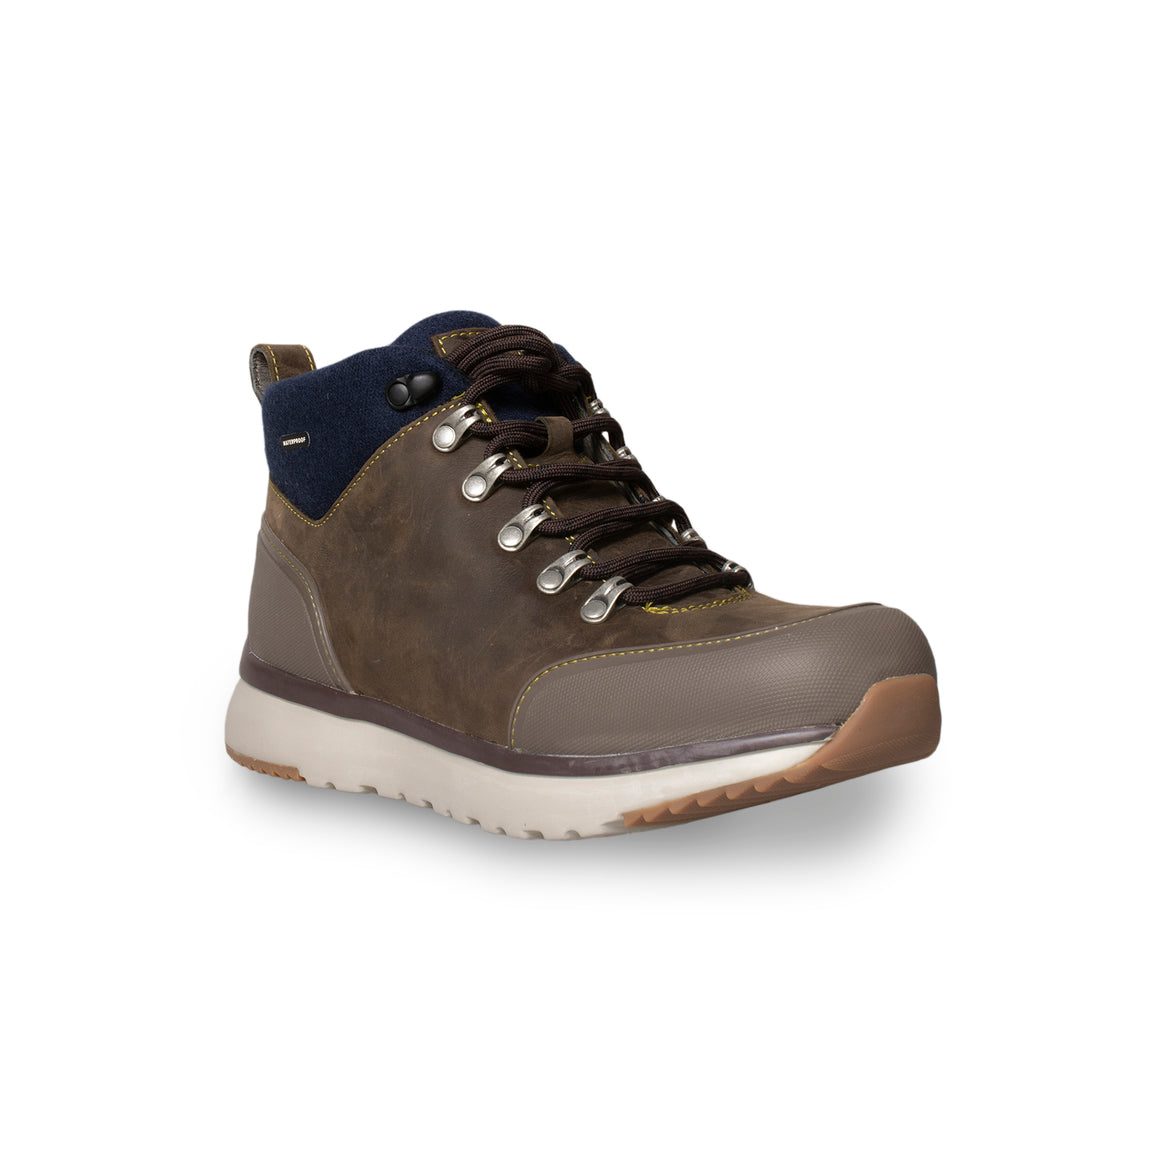 UGG Olivert Slate Boot's - Men's